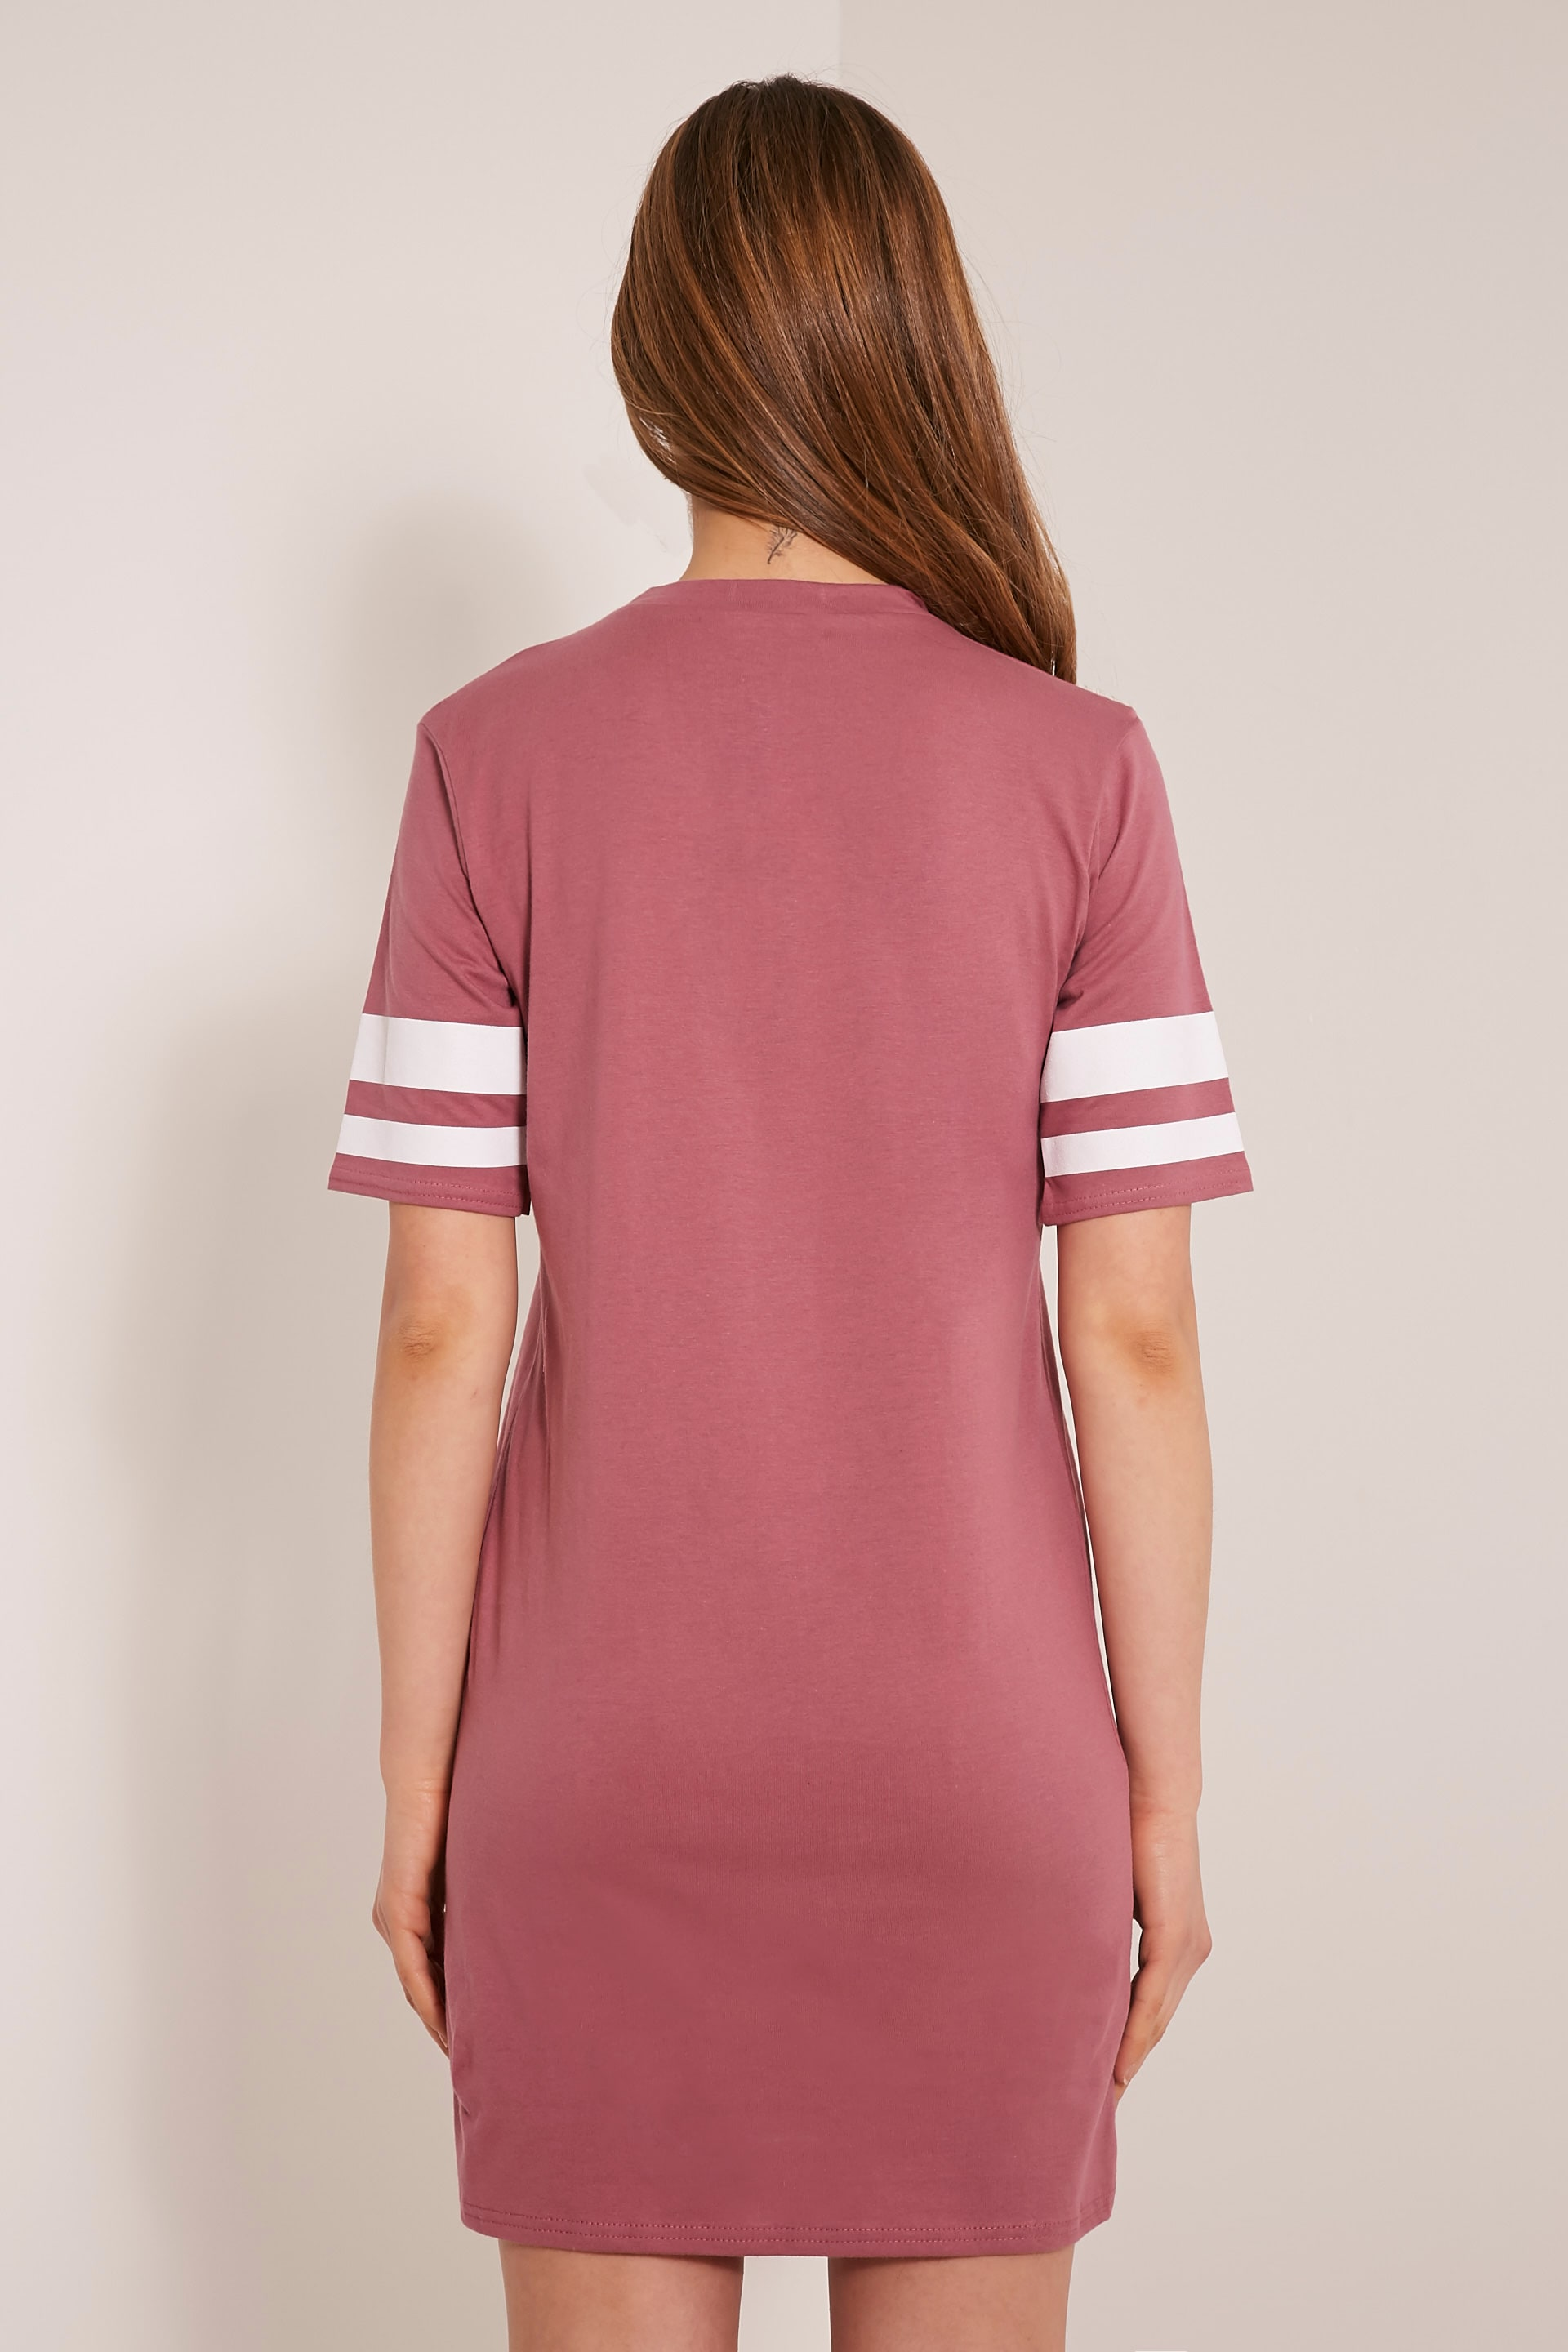 Taylia Rose Stripe Sleeve T Shirt Dress 2